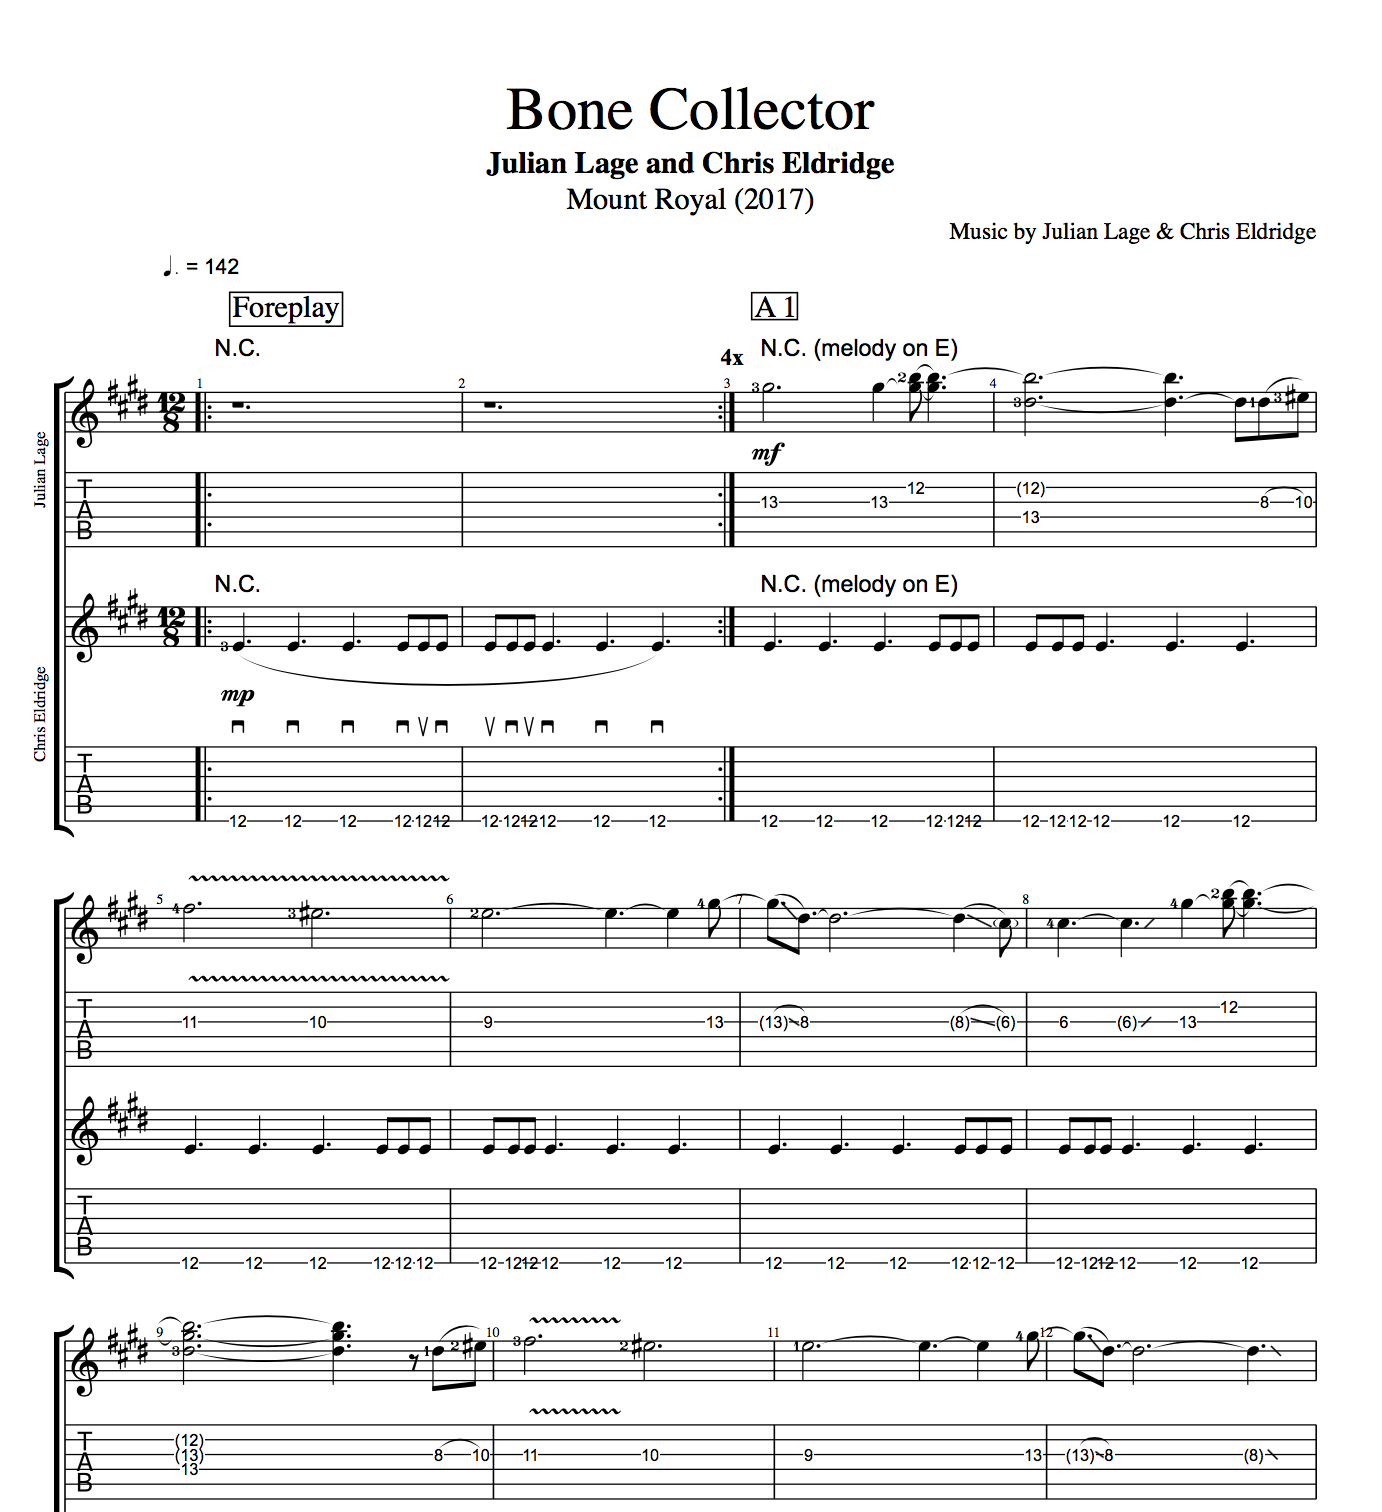 Bone collector by julian lage and chris eldridge guitars tabs play like the greats hexwebz Image collections